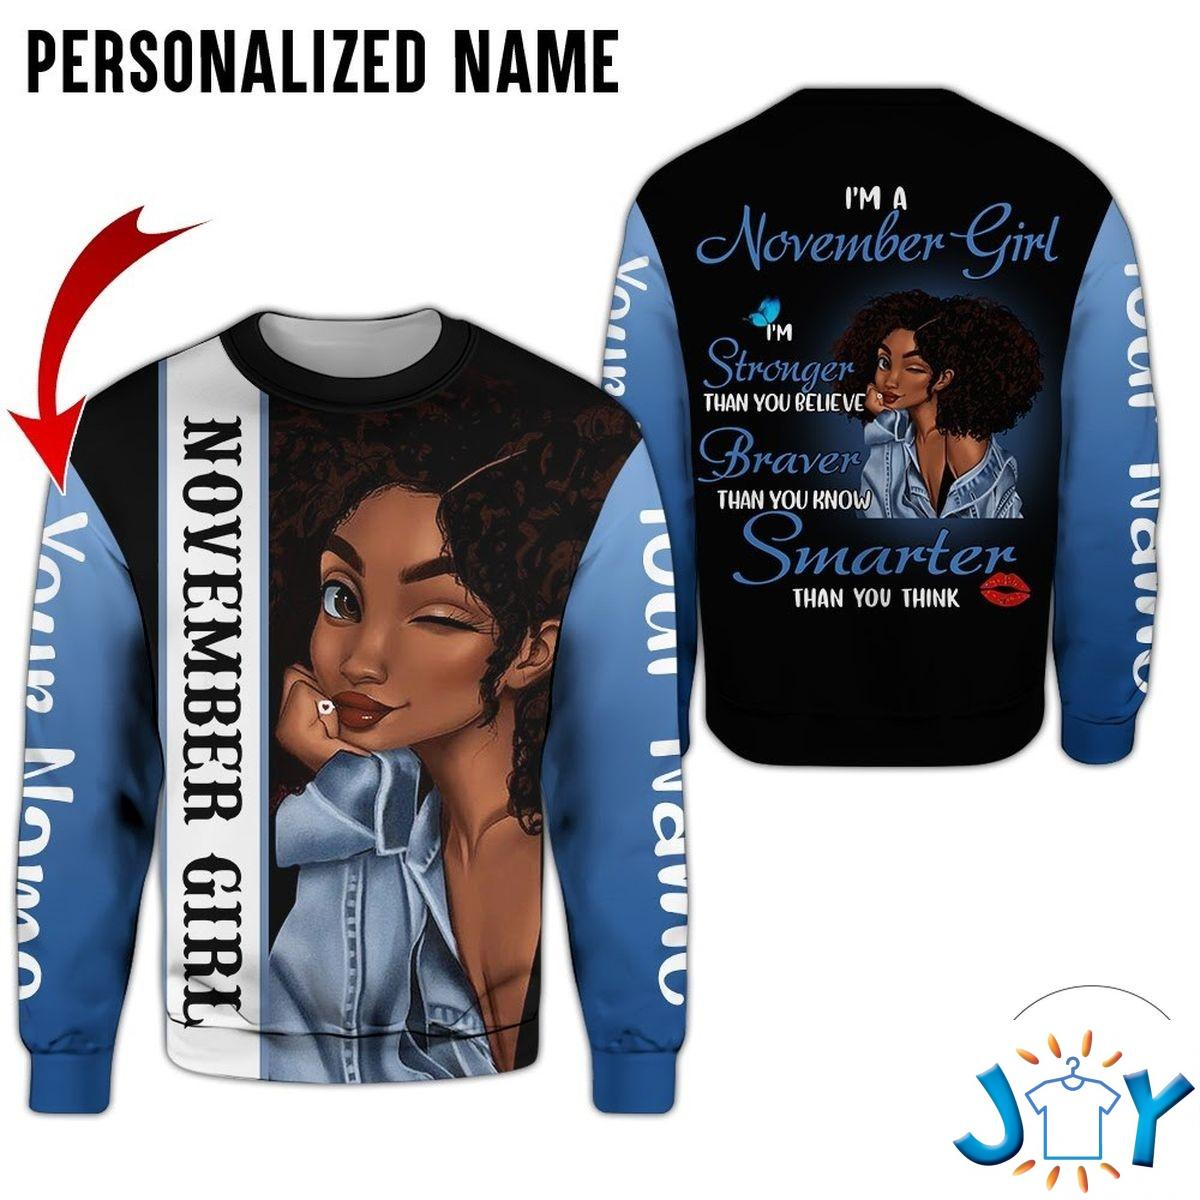 Personalized Name November Girl I'm Stronger Than You Believe All Over Print Hoodie